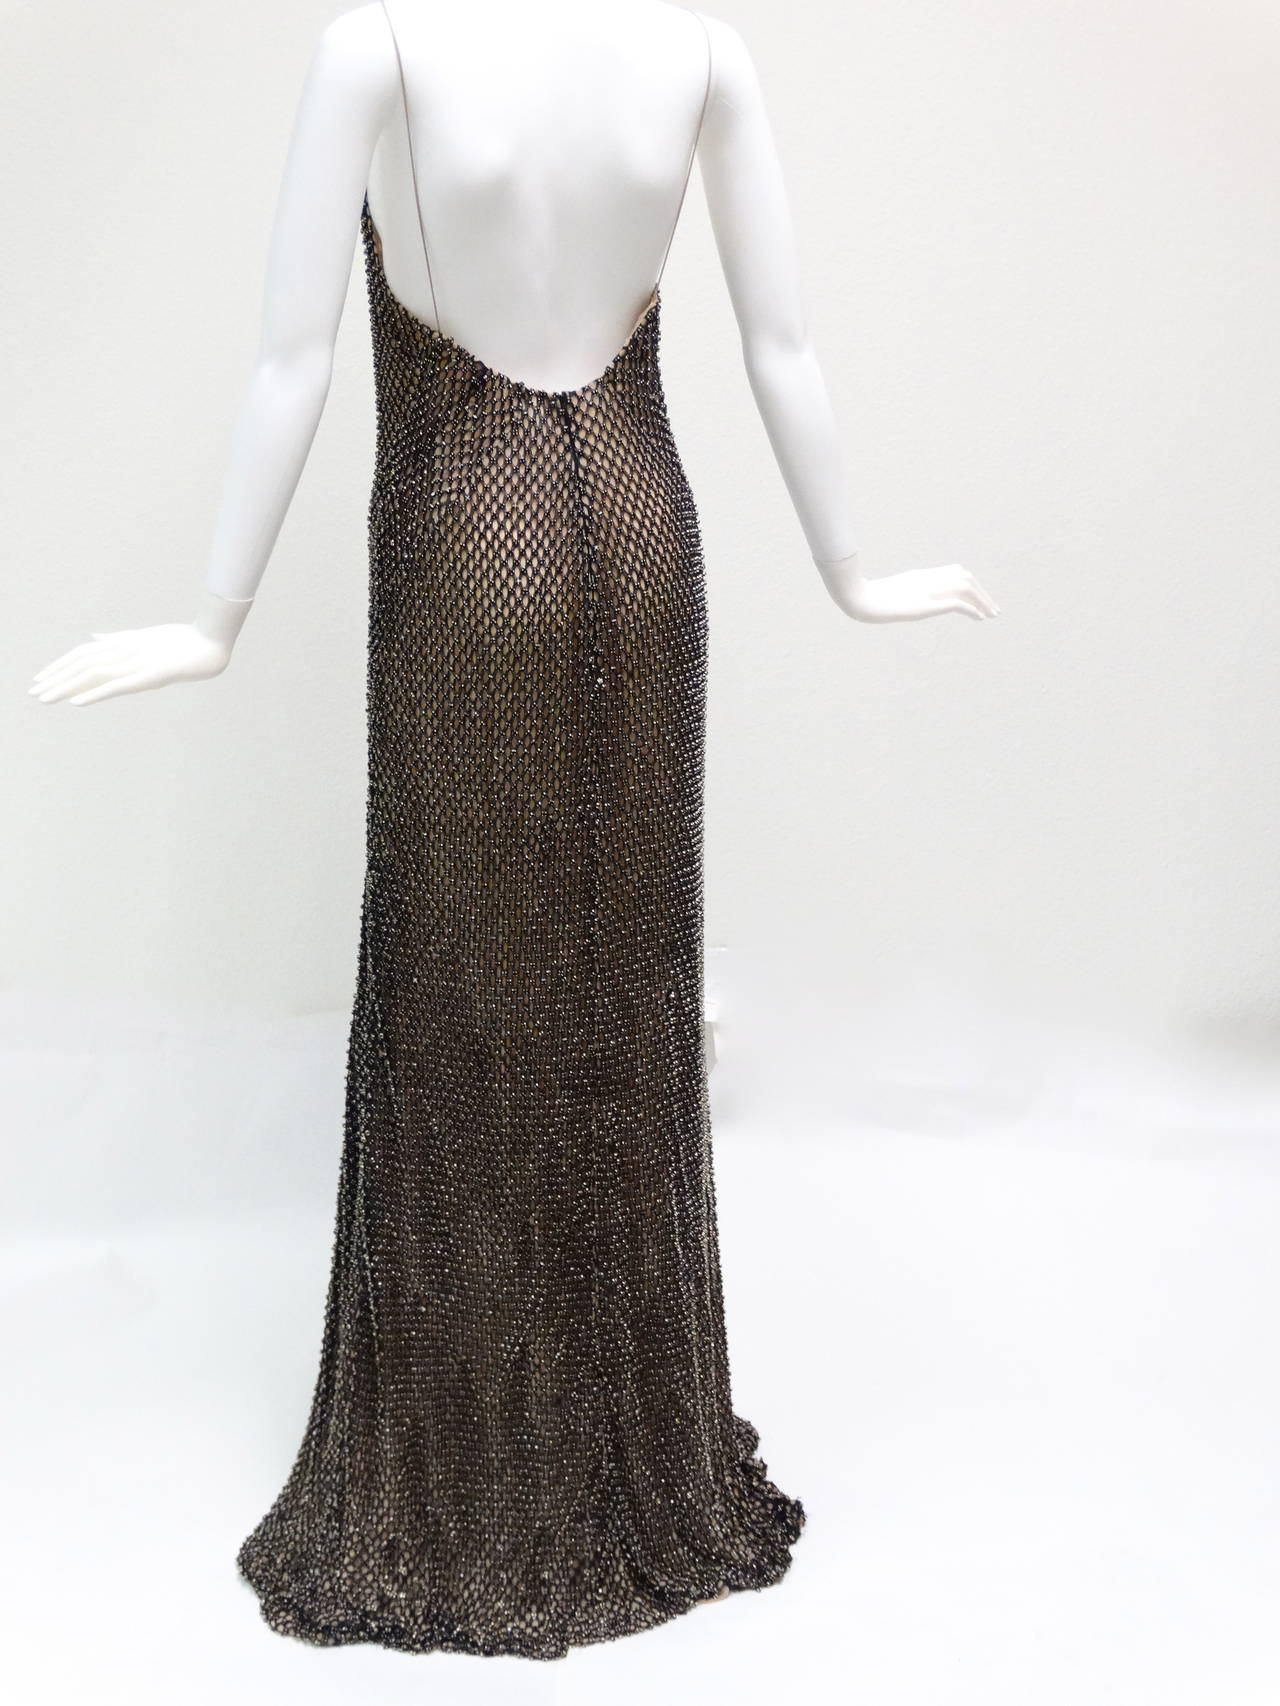 Gucci Black Rhinestone Evening Gown For Sale at 1stdibs